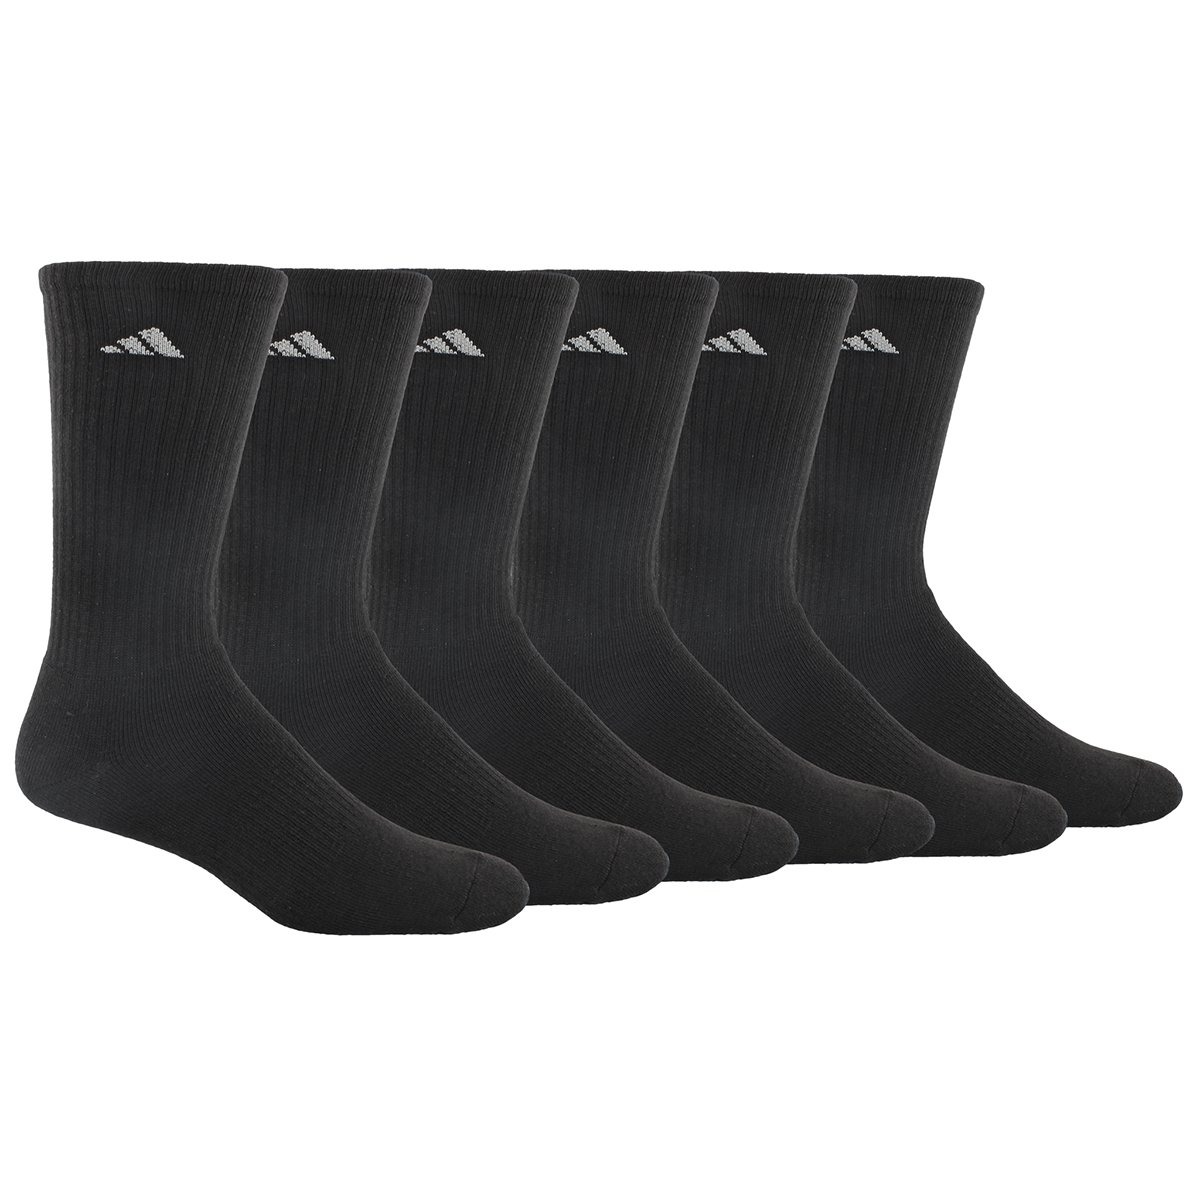 adidas Men's Athletic Crew Sock, Black/Aluminum 2, Pack of 6, Fits Shoe Size 6-12 by adidas